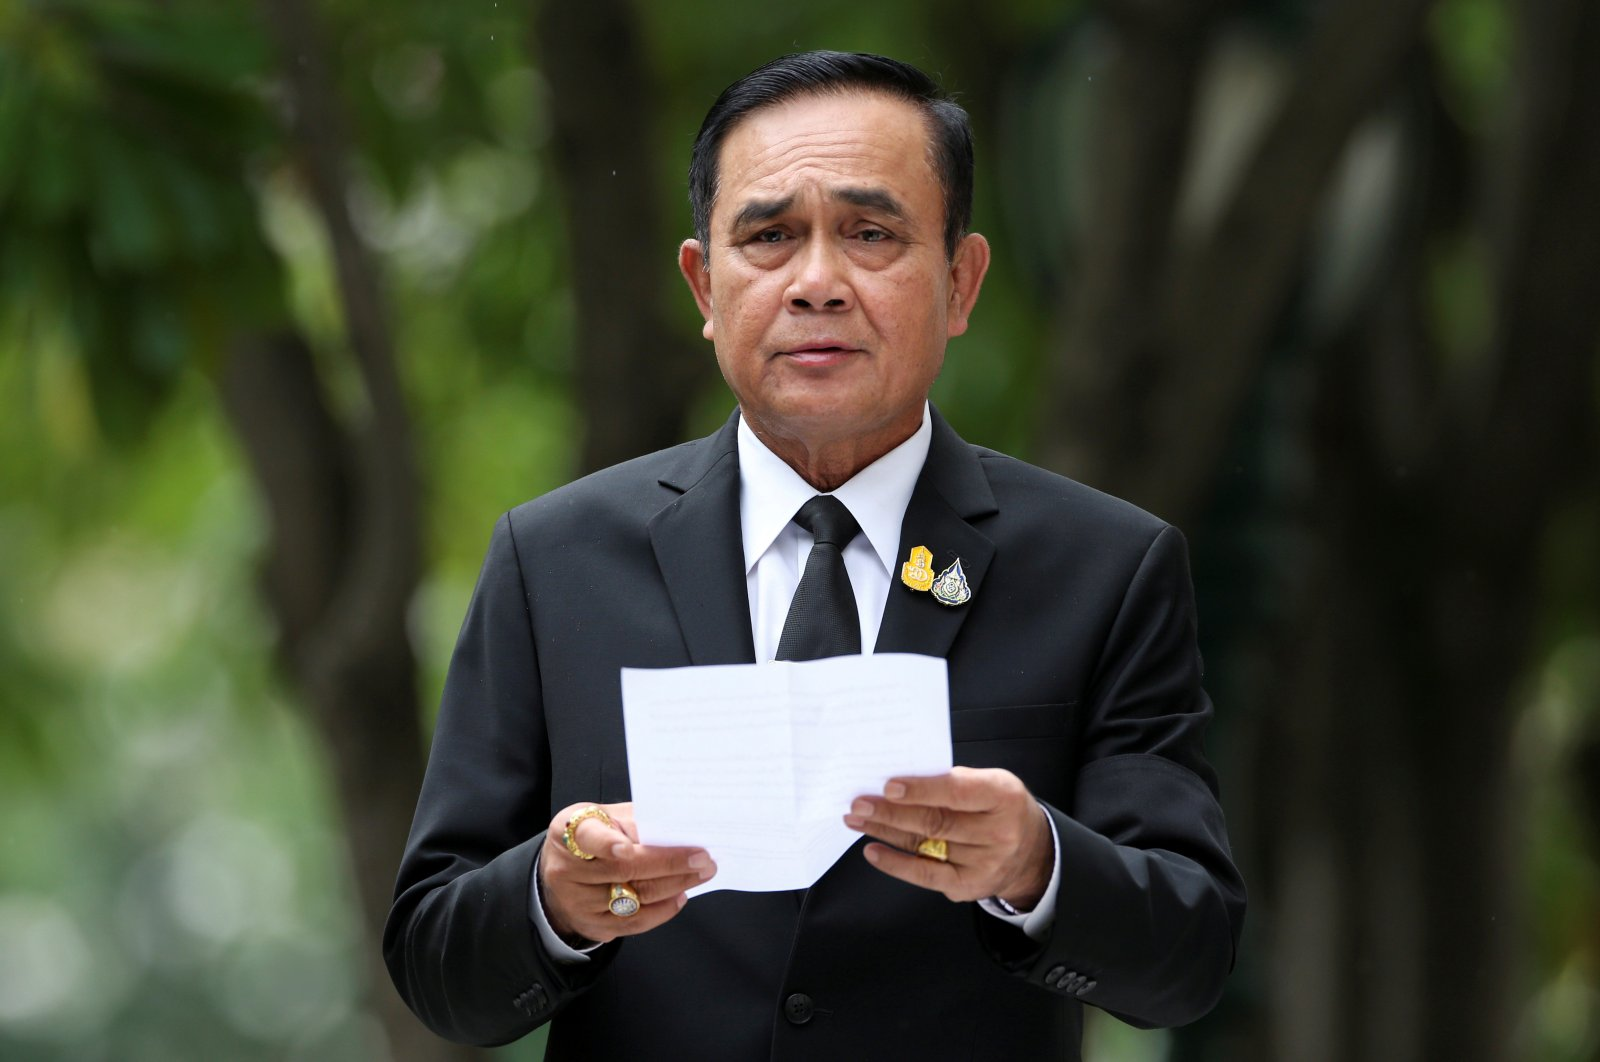 Thailand's Prime Minister Prayuth Chan-ocha speaks to media members at the Government House in Bangkok, Thailand, June 6, 2019. (Reuters Photo)